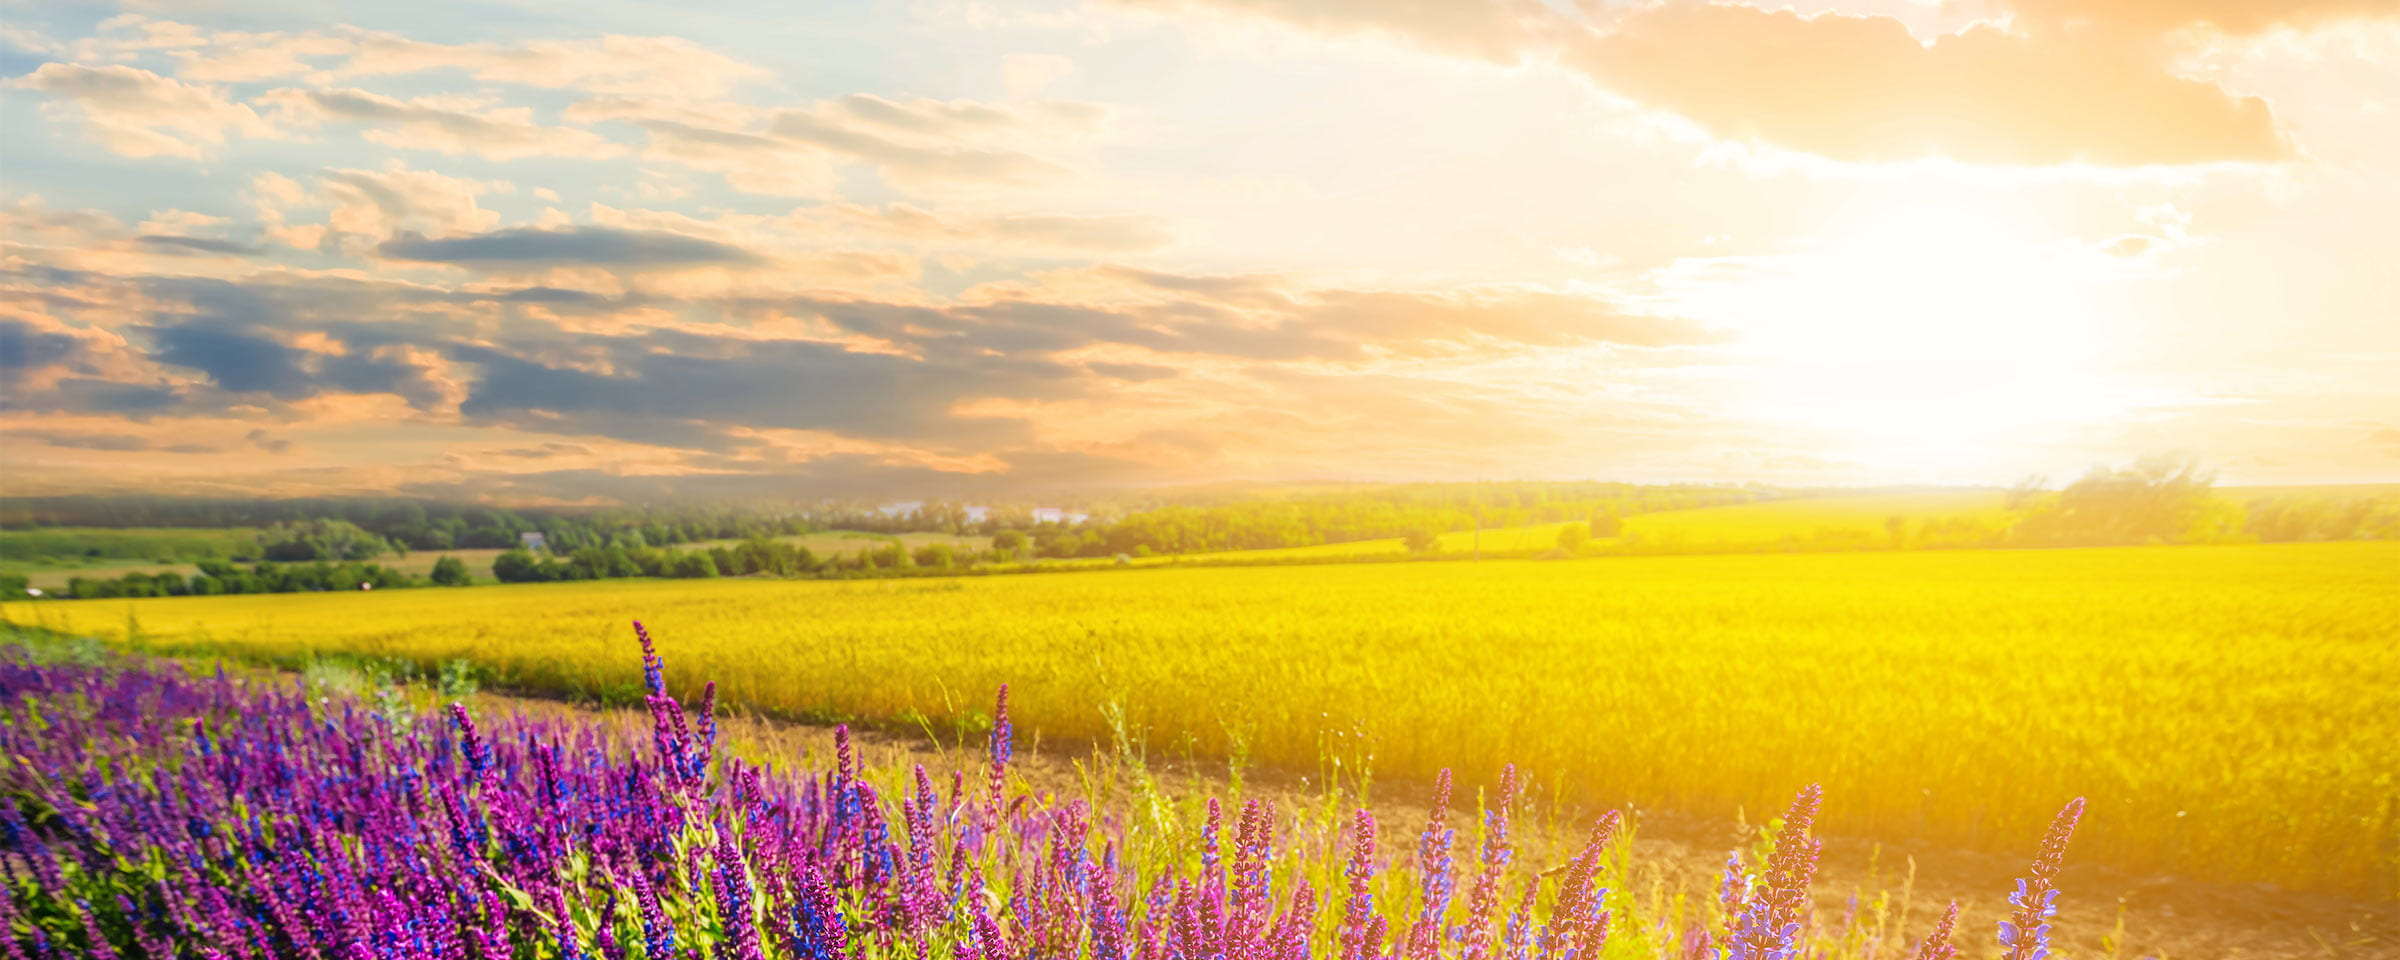 Field of wheat and flowers